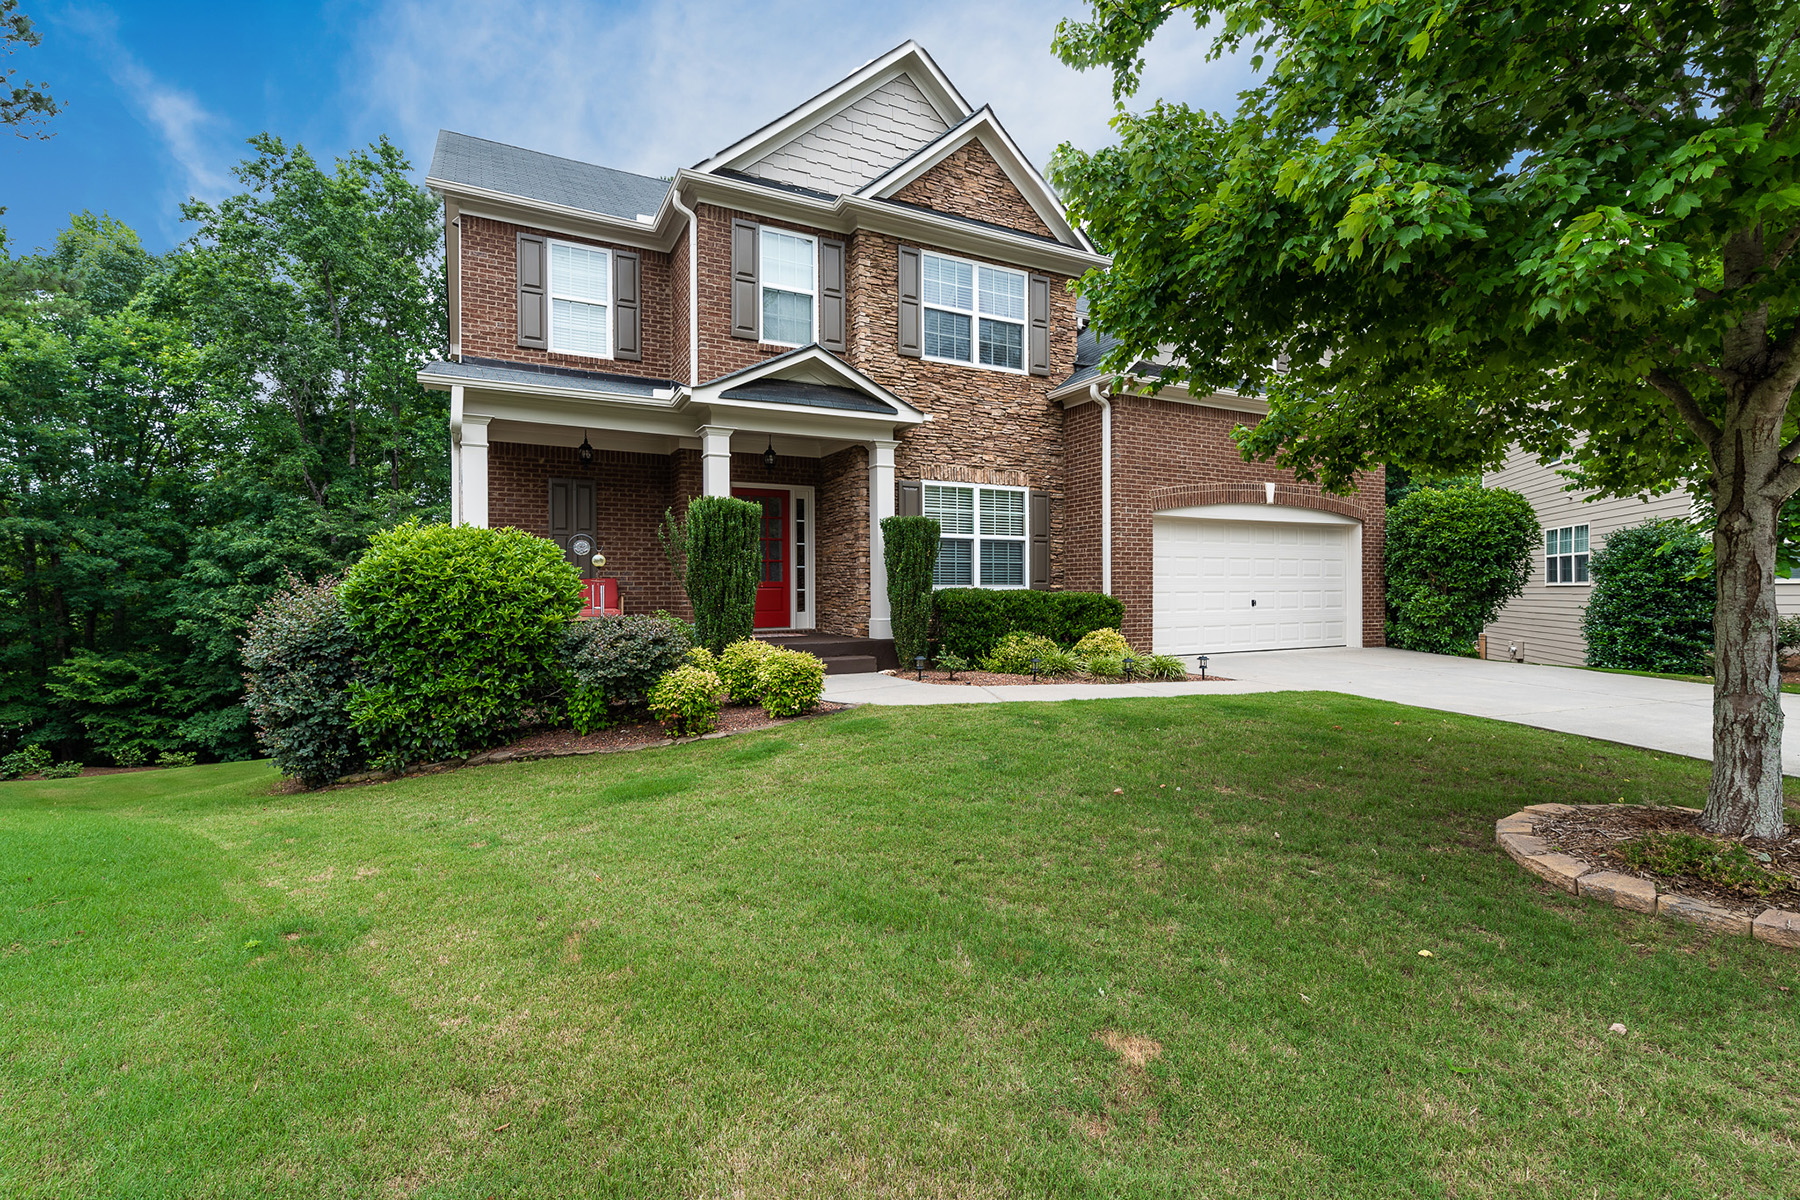 Single Family Homes for Active at Prime Location and Meticulously Maintained Home in Bentwater 31 Rose Bay Ct Acworth, Georgia 30101 United States